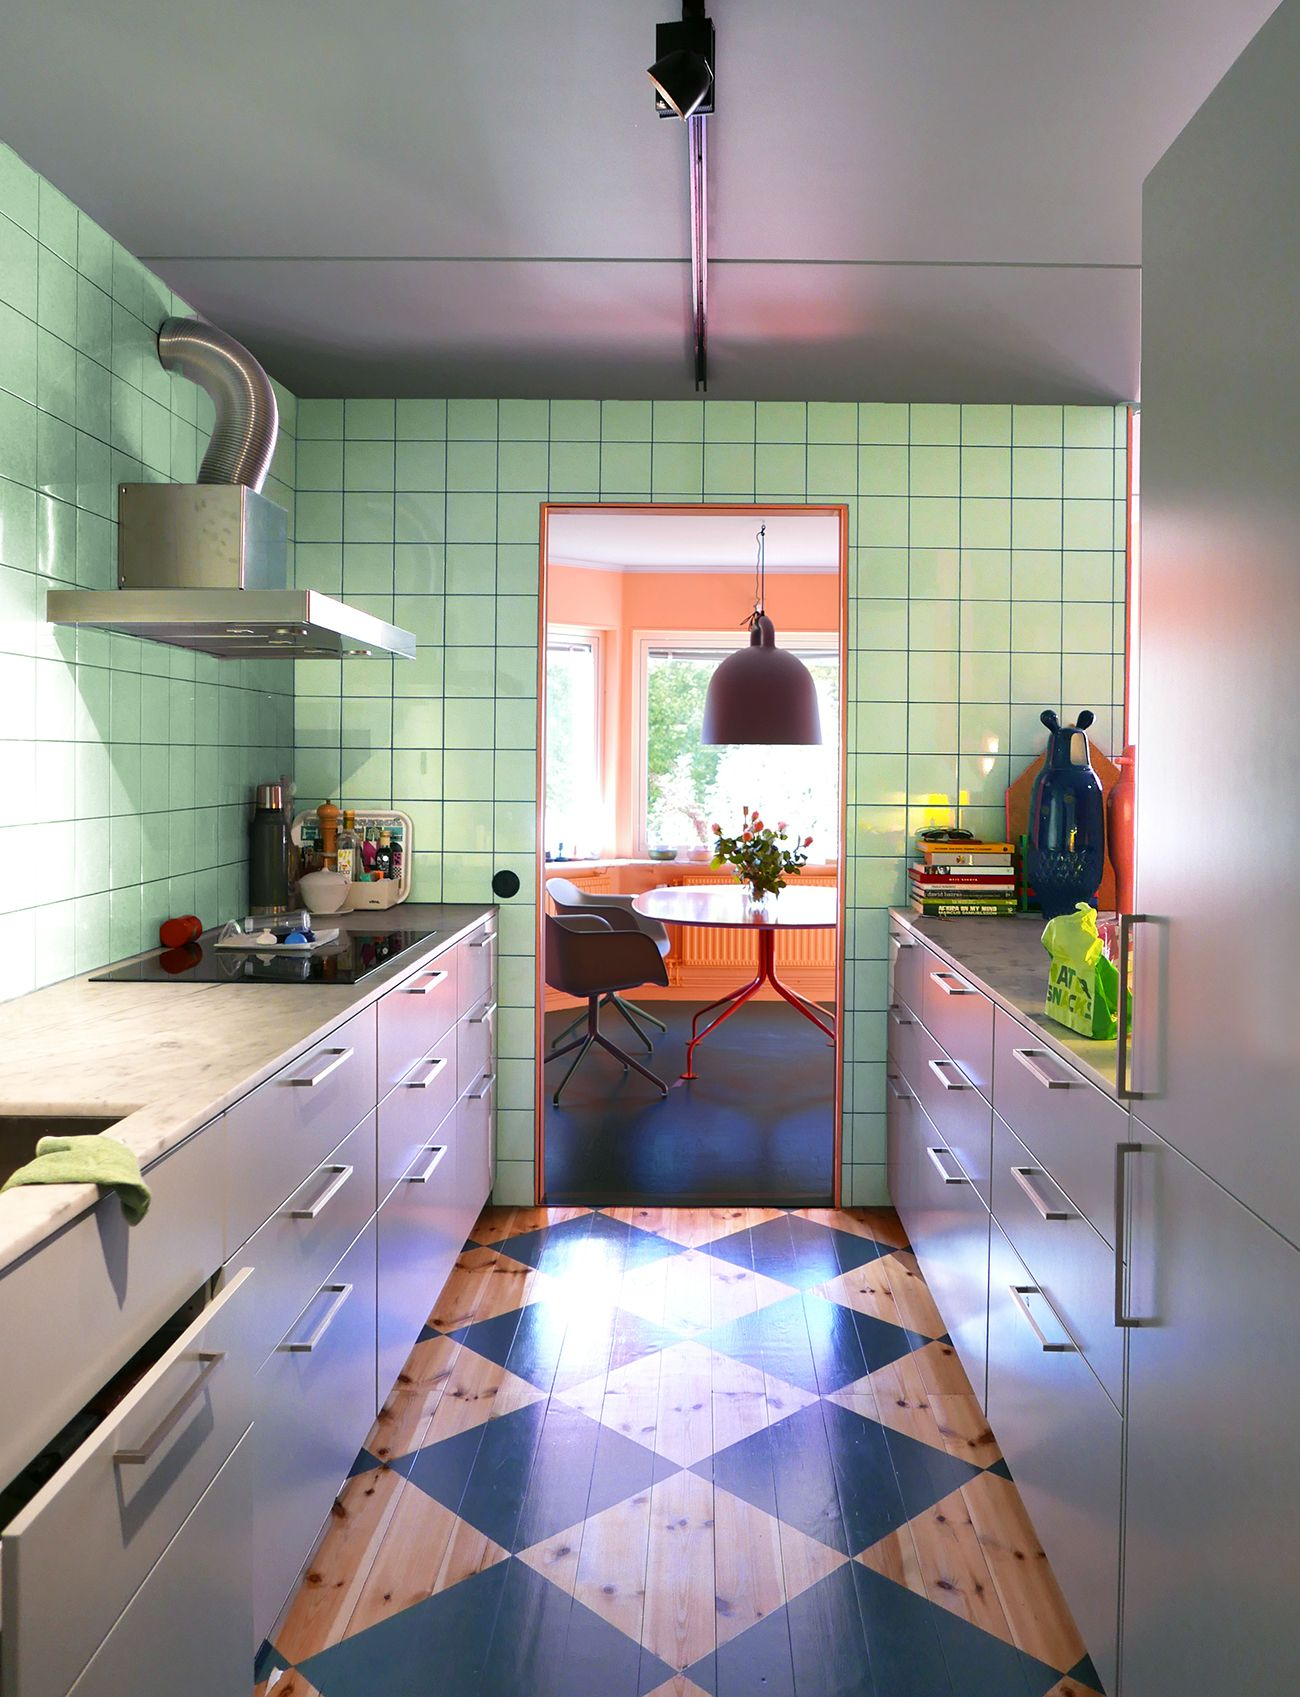 Itus the best of both worlds when you blend s mint green tile